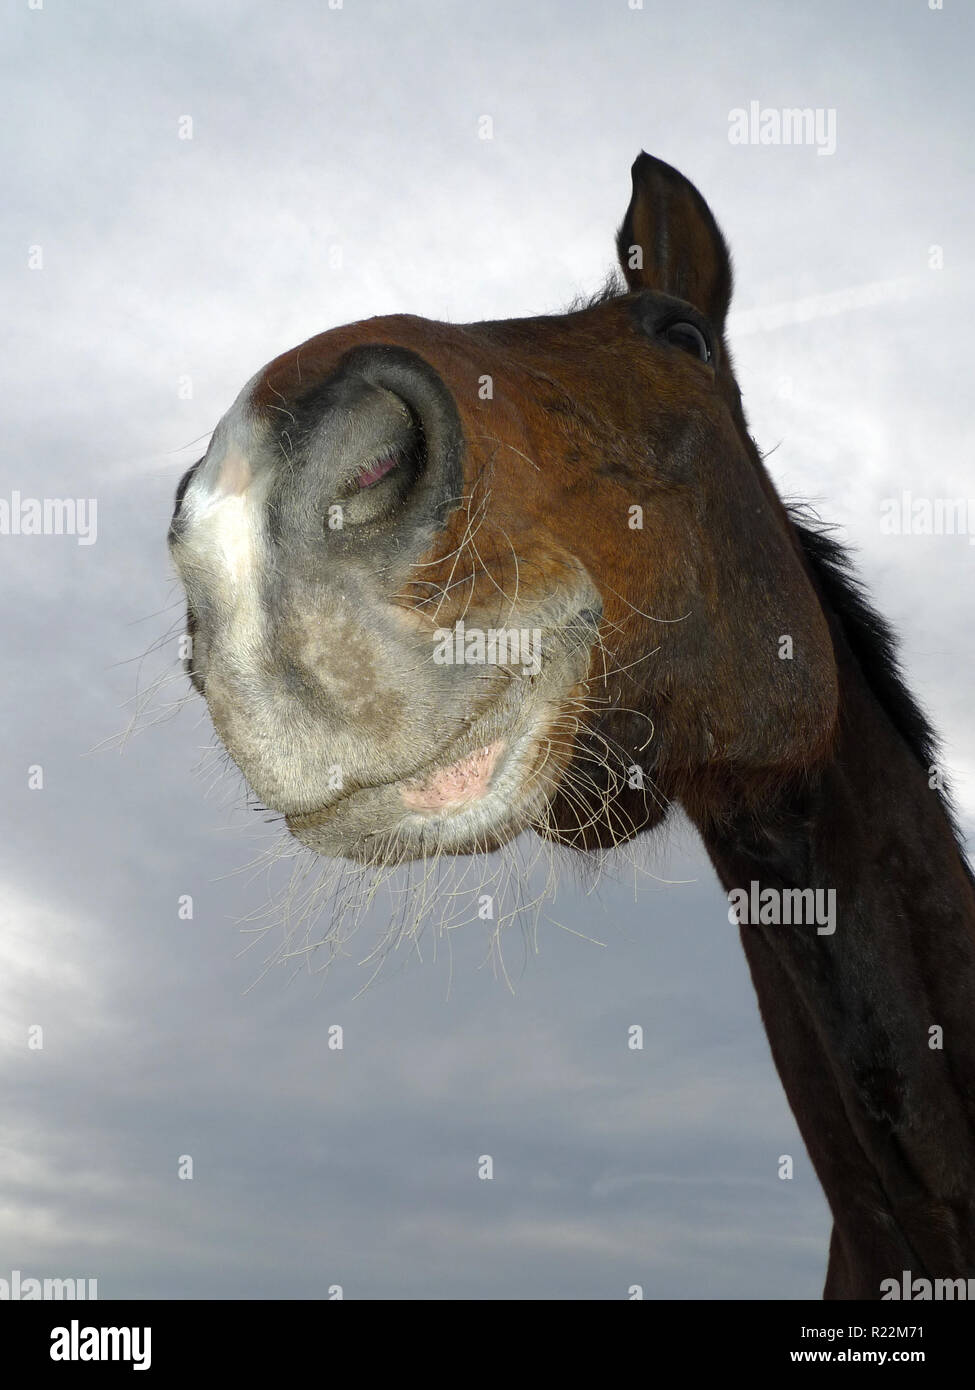 THE LAUGHING HORSE Stock Photo